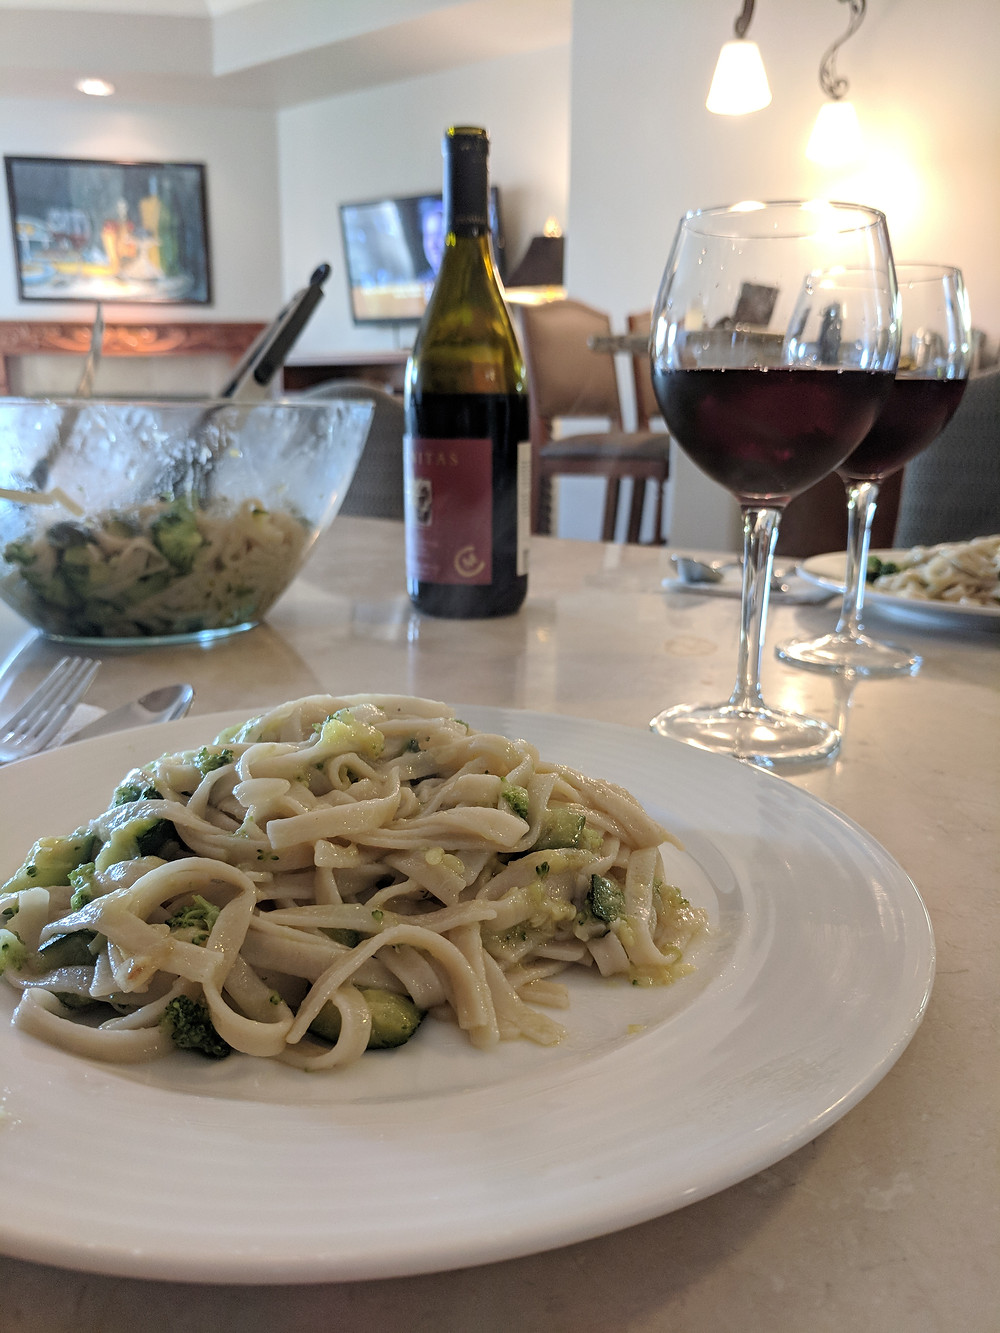 Tips for Traveling and Dining Out with Food Allergies - Amanda MacGregor - hotel eating